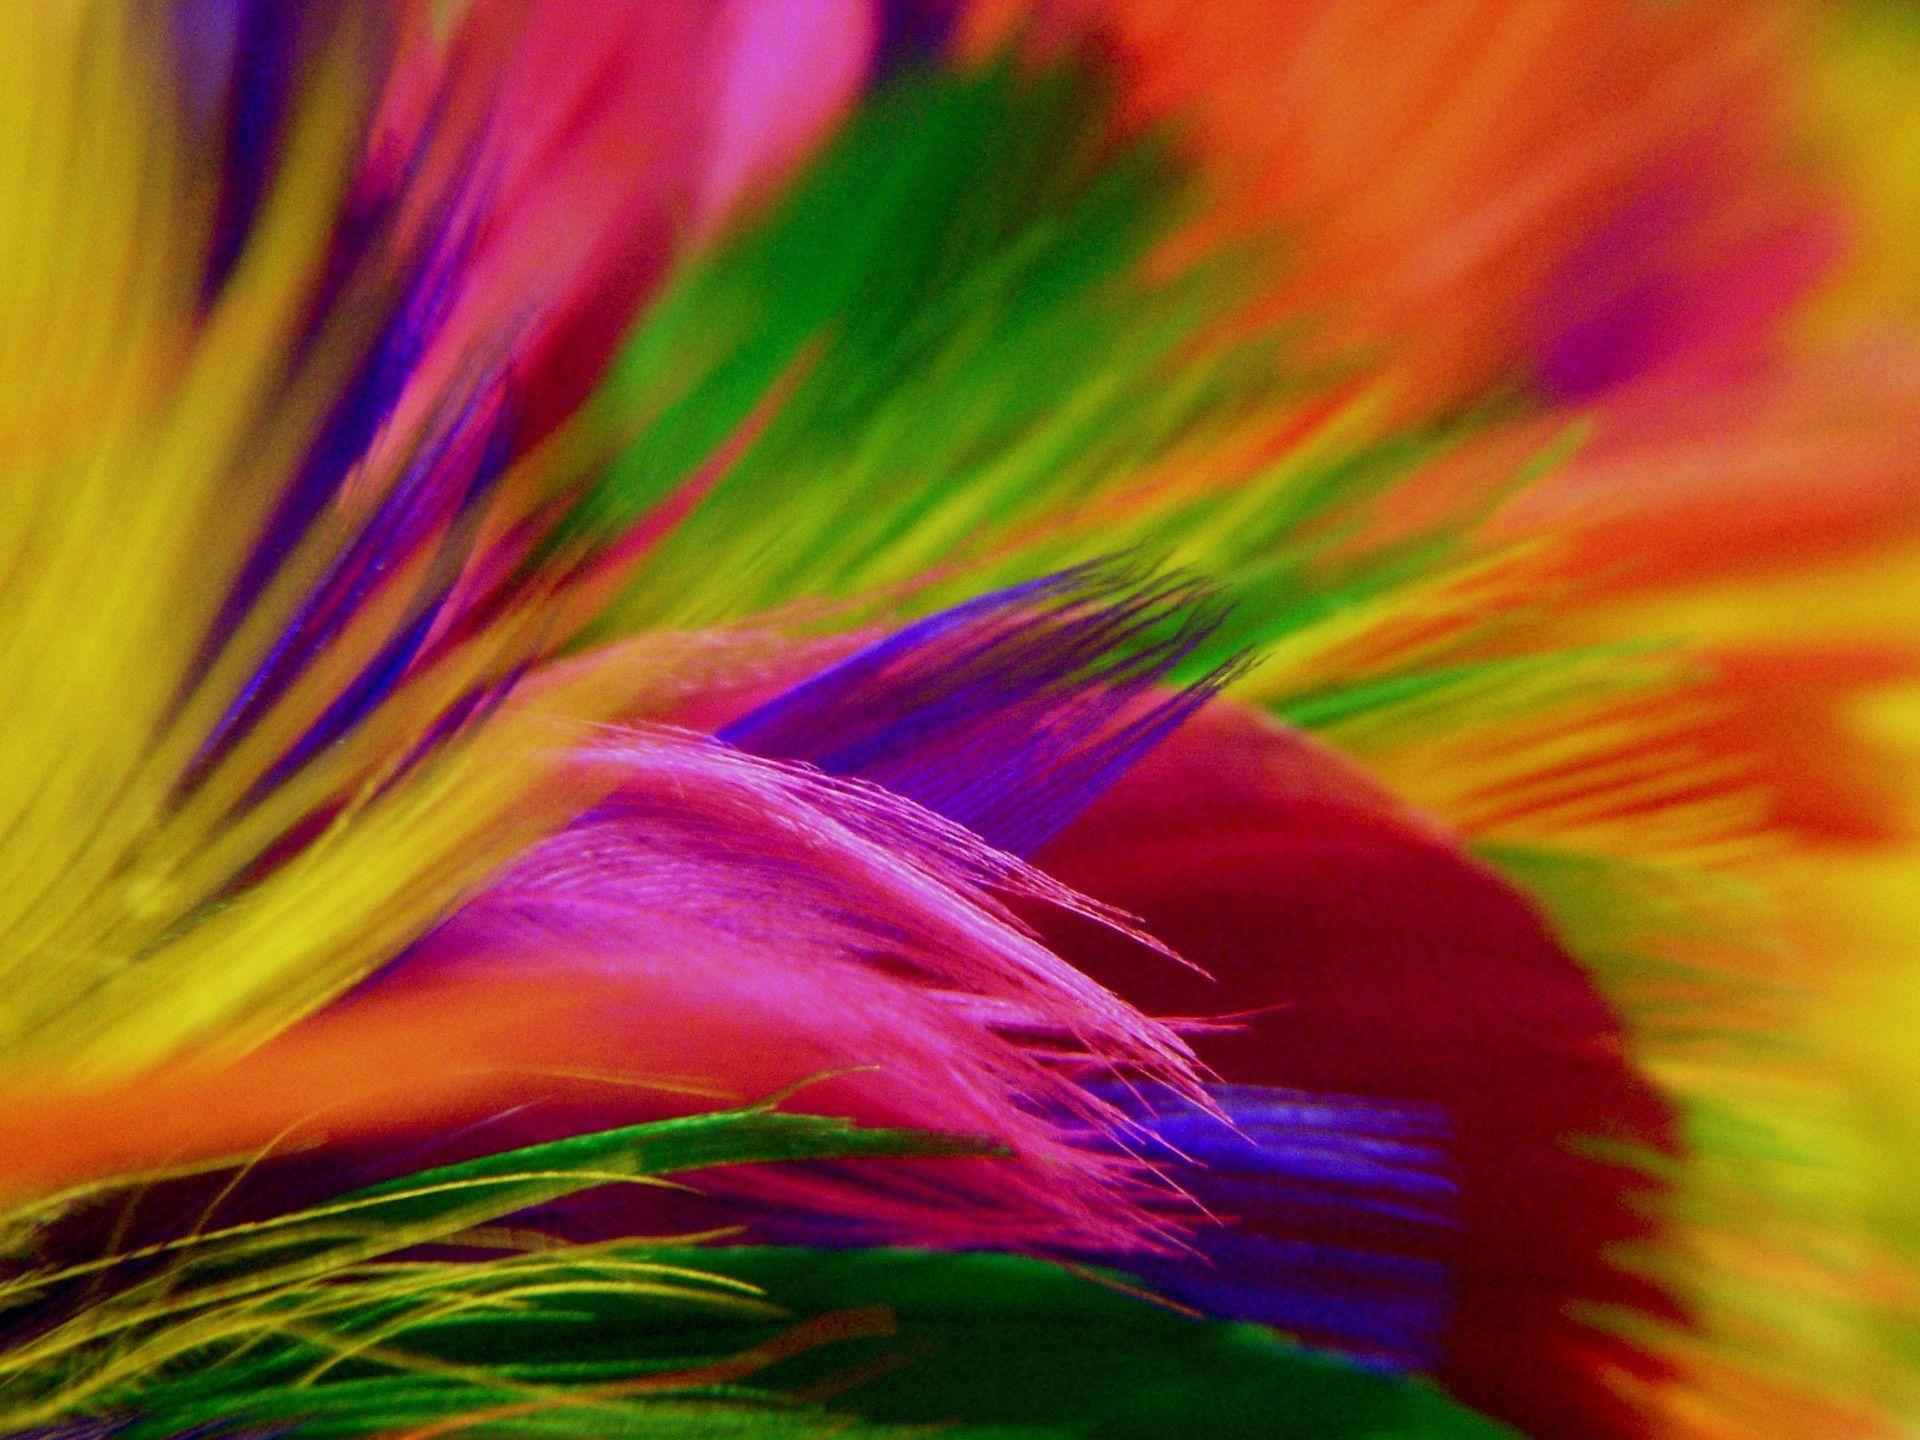 colorful hd backgrounds wallpaper